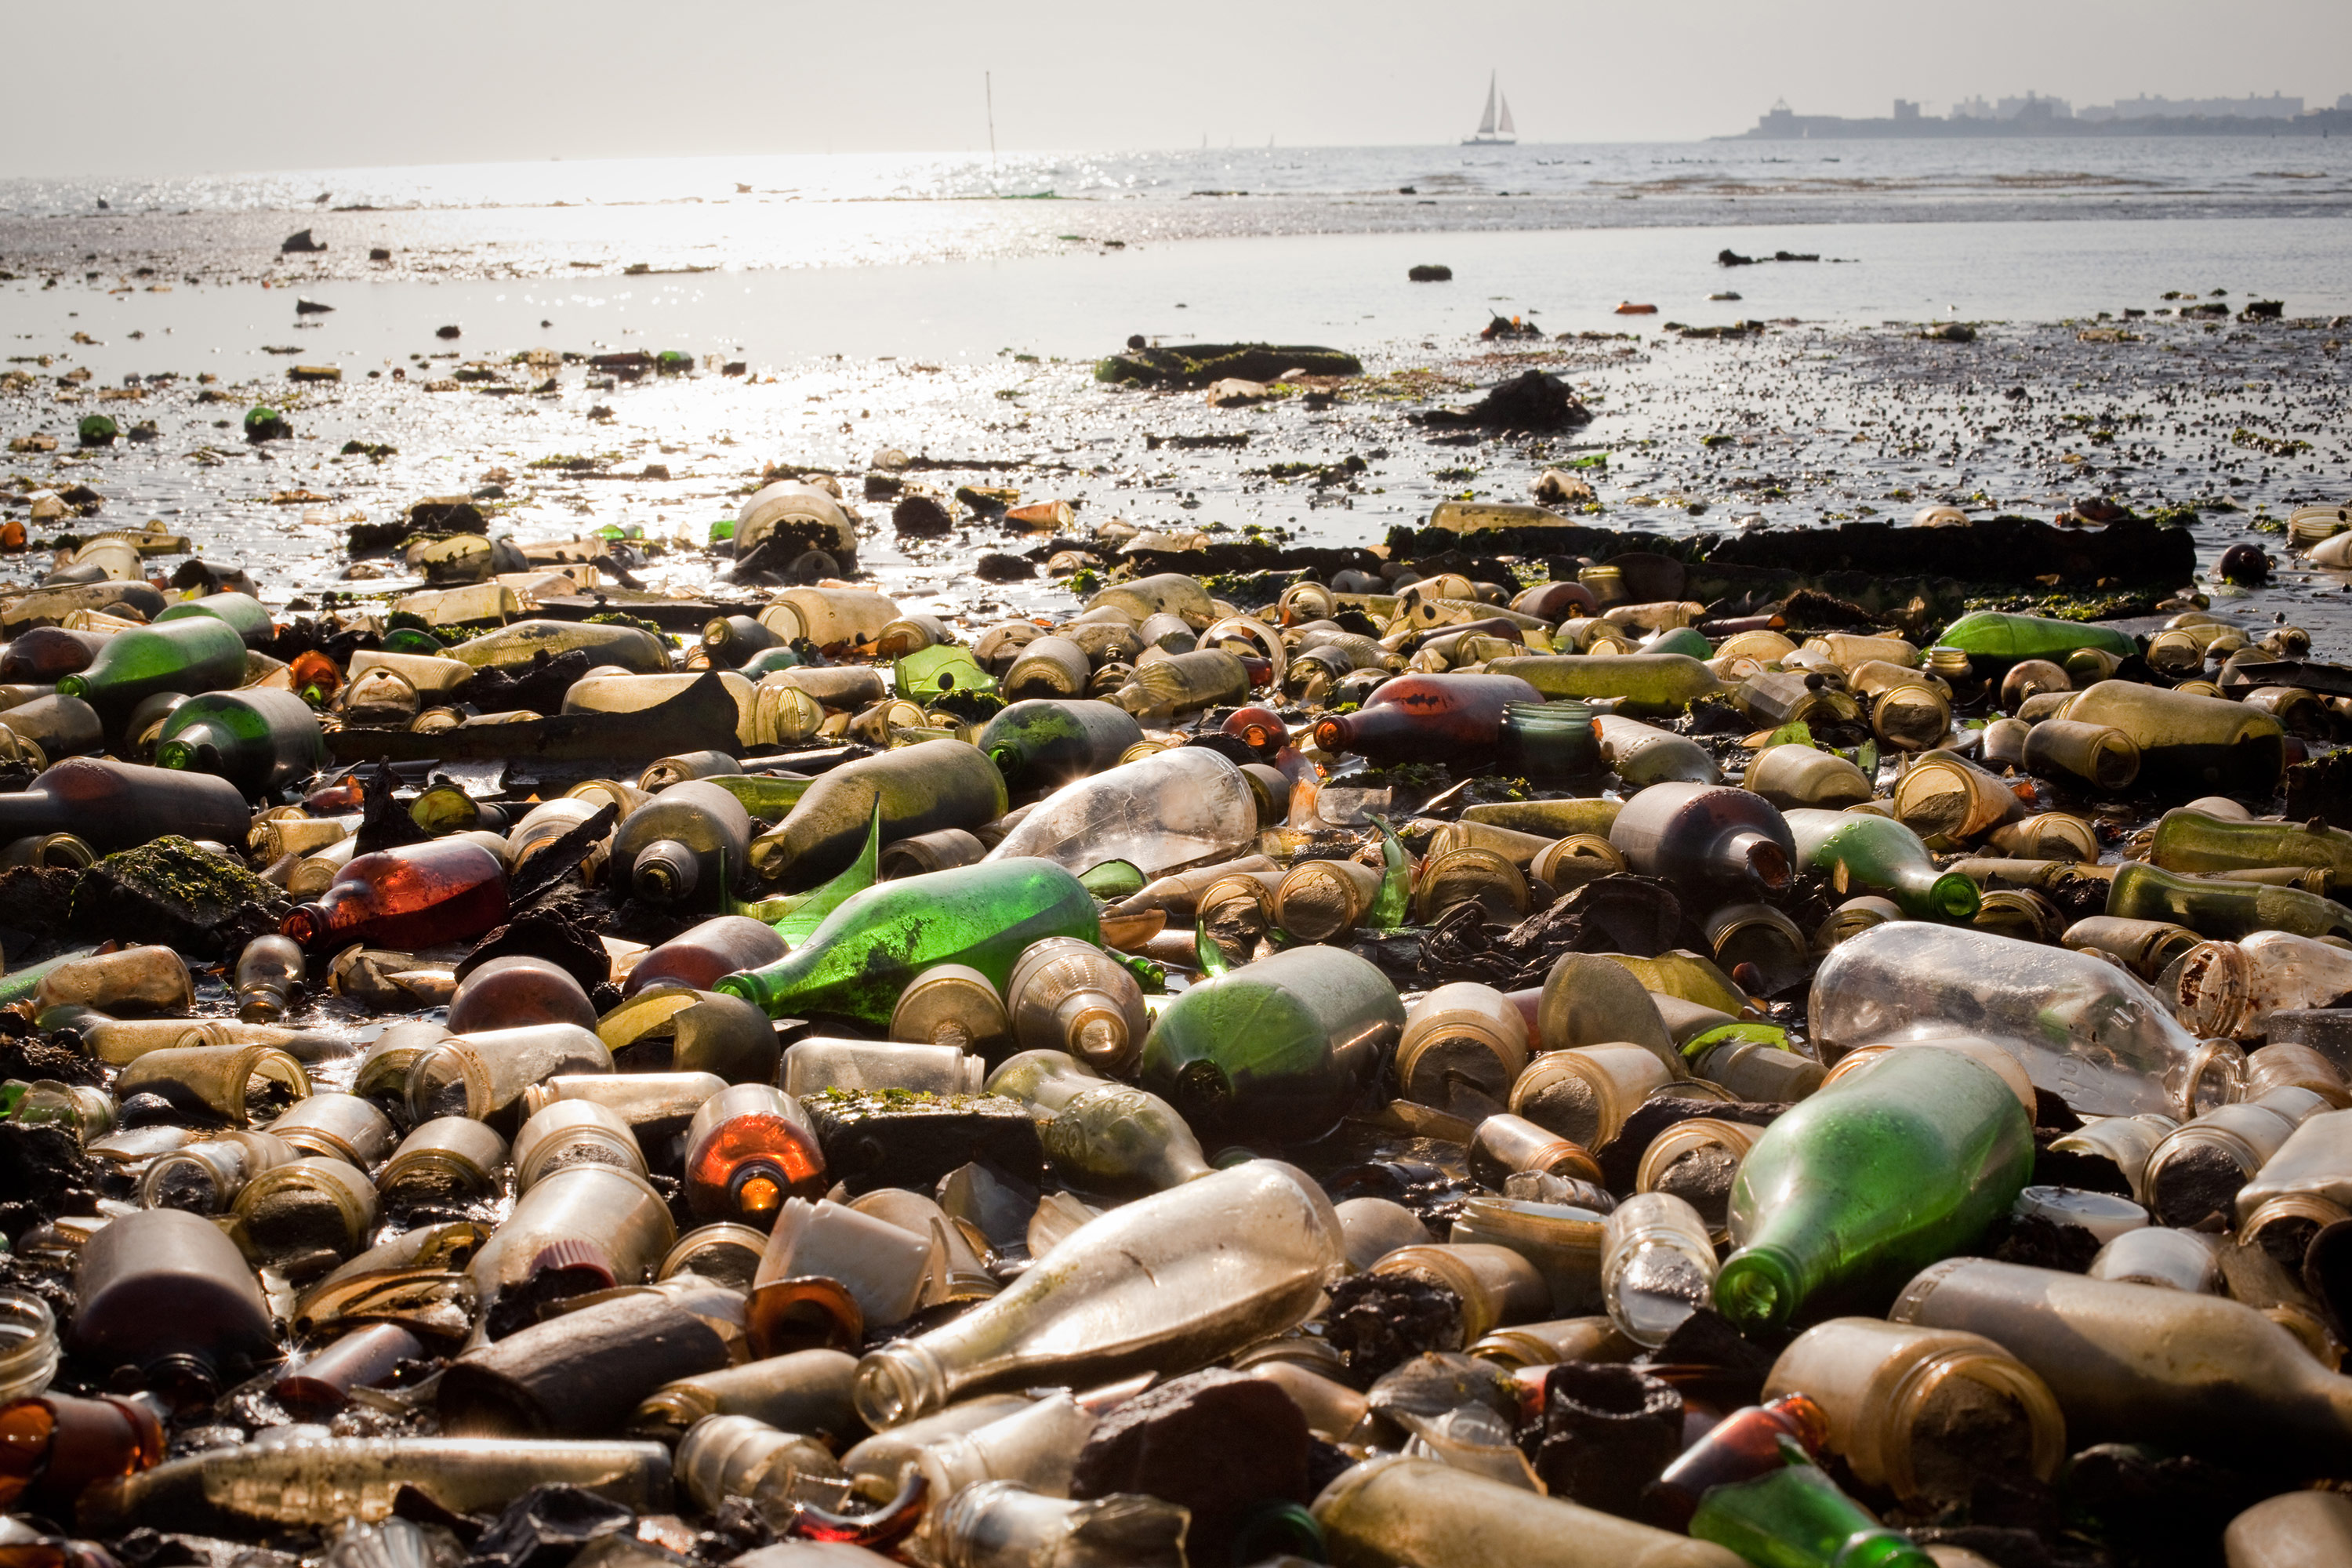 Glass bottles and trash cover the shore of a beach in Dead Horse Bay in southeast Brooklyn.